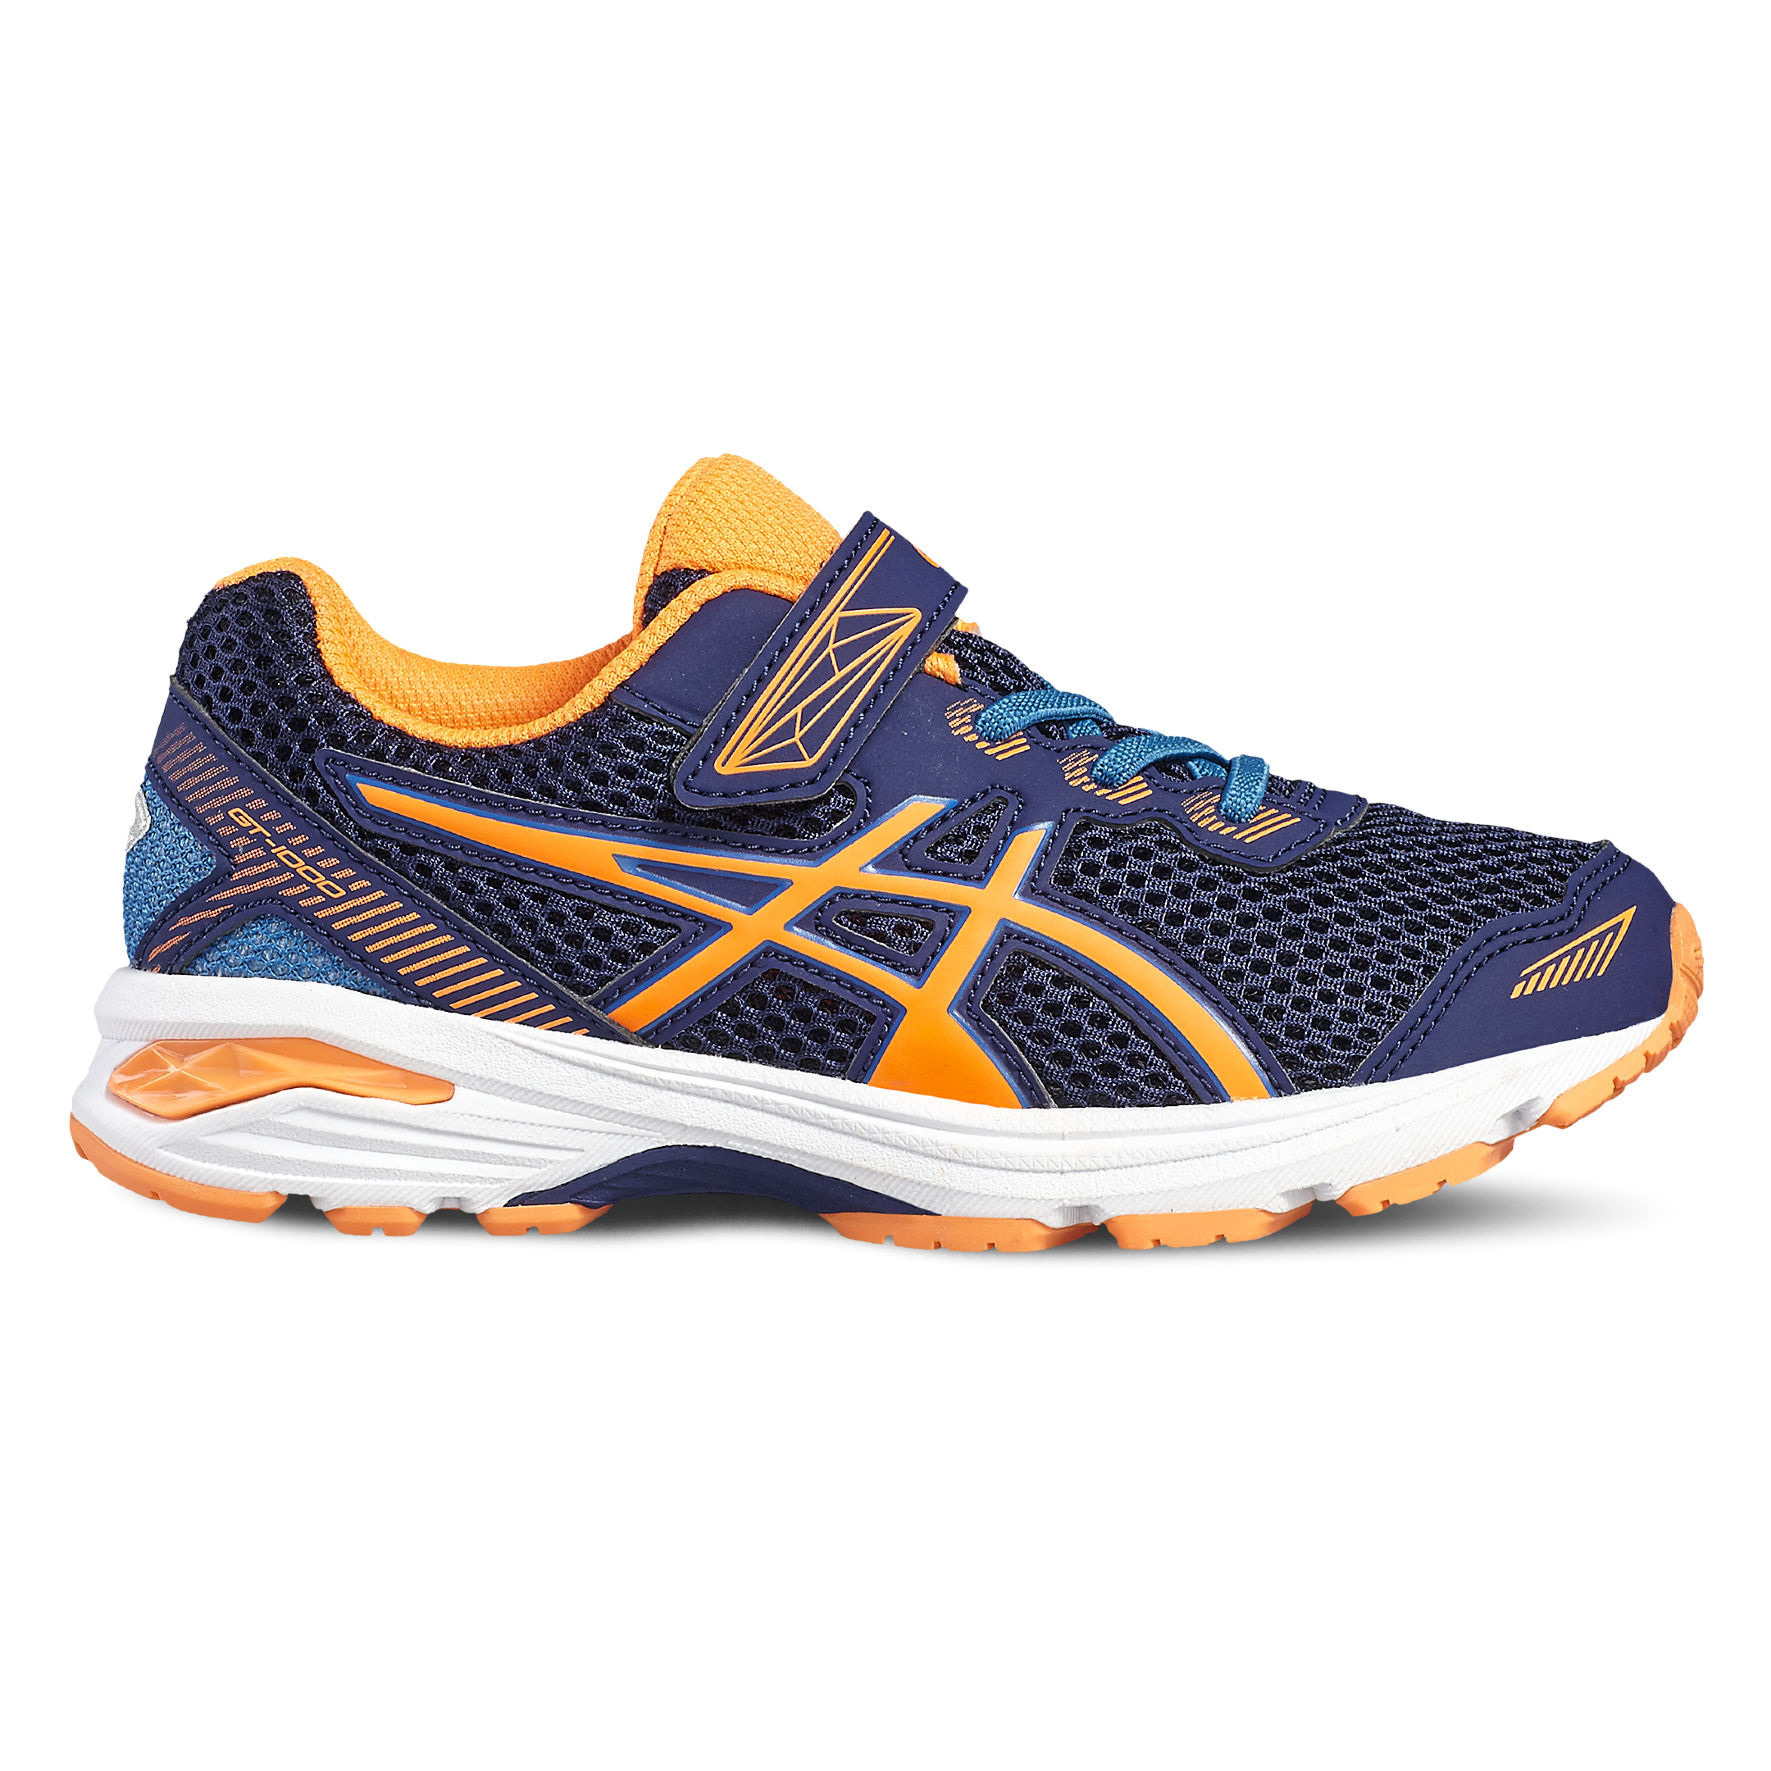 Asics GT-1000 5 PS in Blau Orange